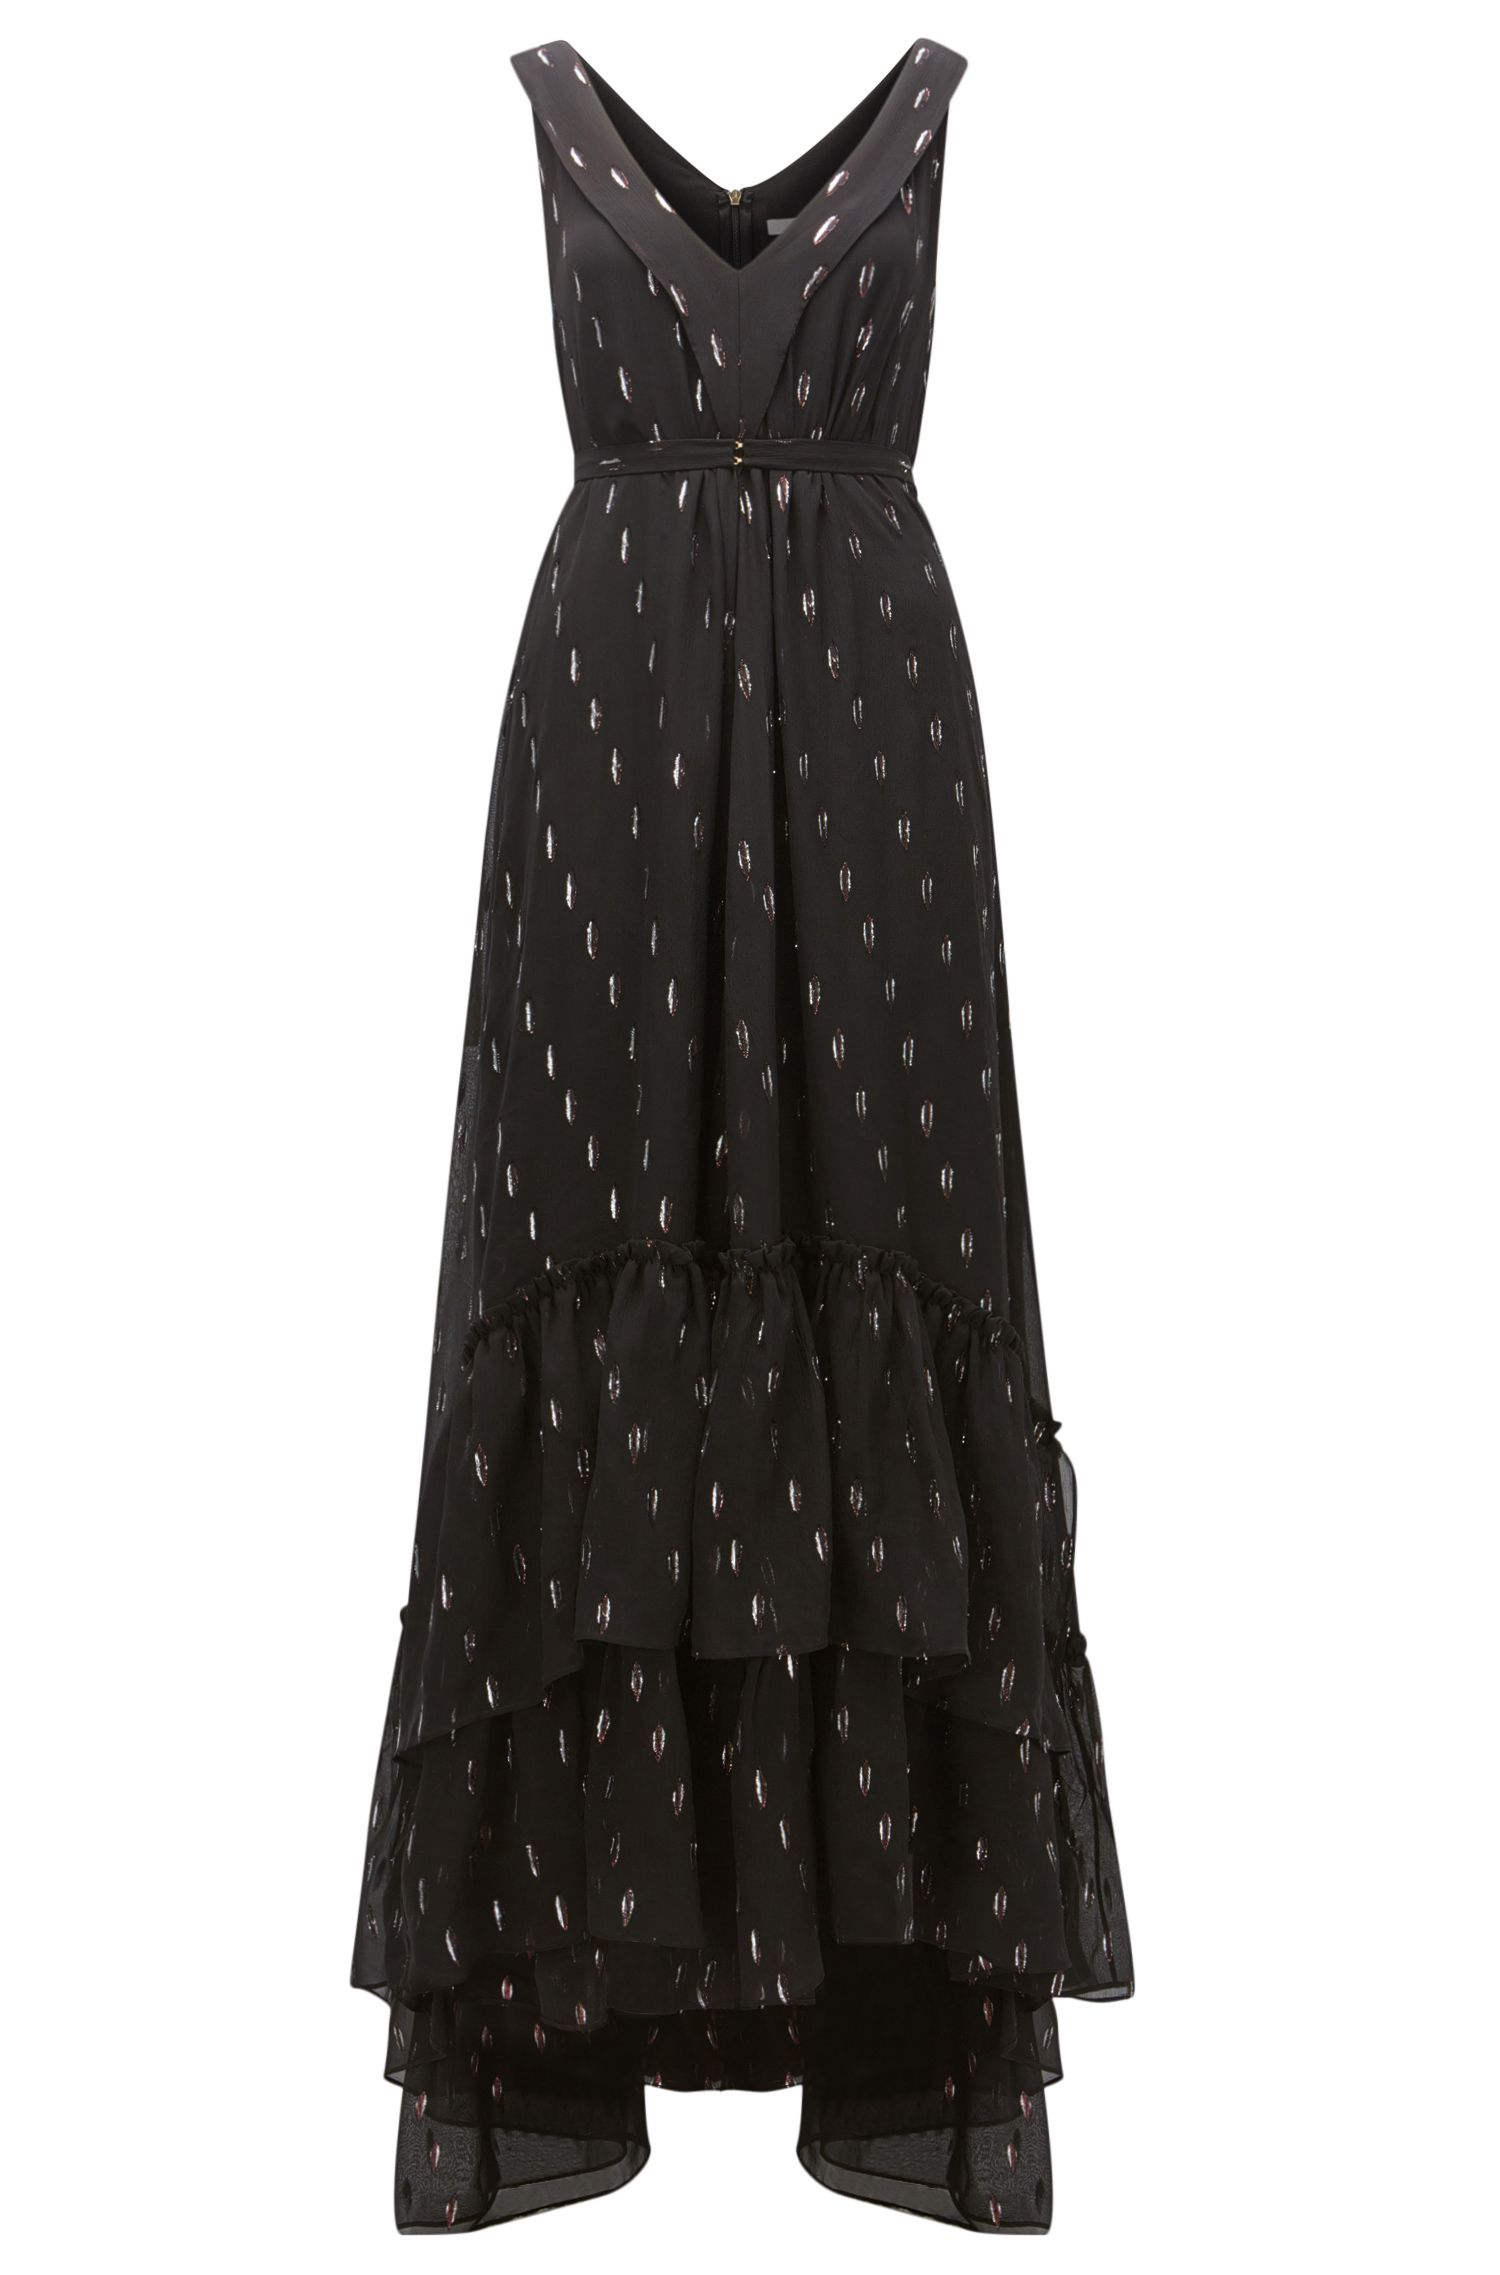 Patterned chiffon maxi dress with a layered hem